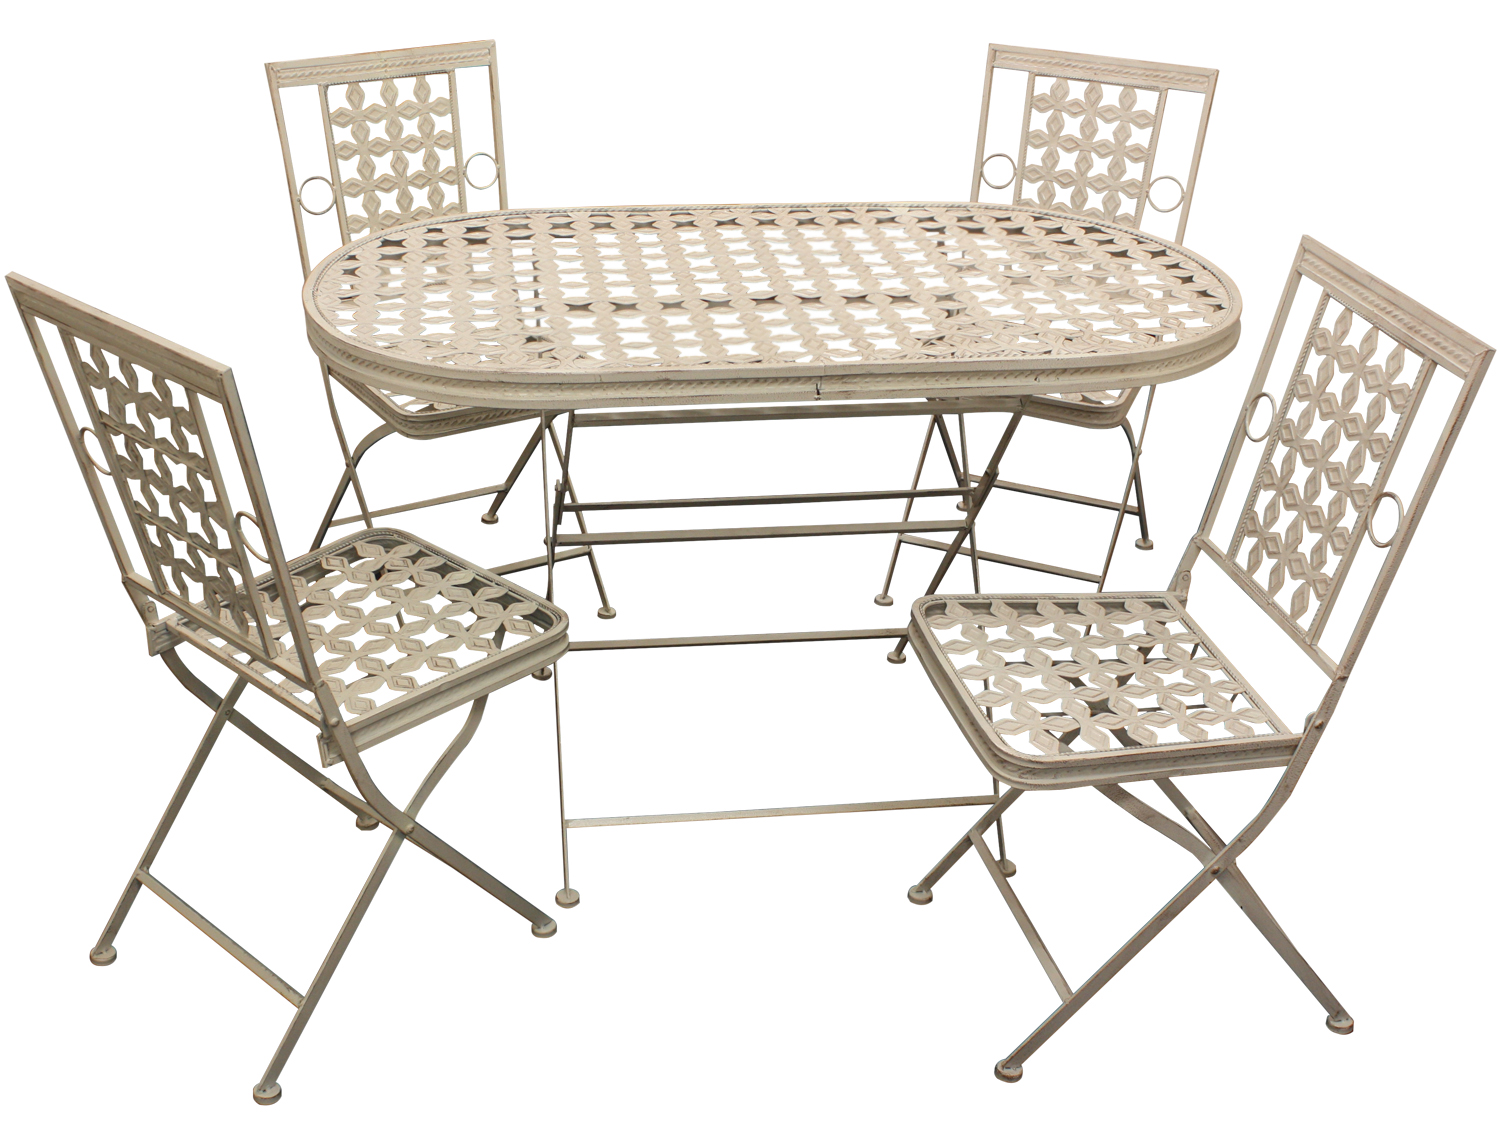 Maribelle folding metal outdoor garden patio dining table for Metal garden table and chairs